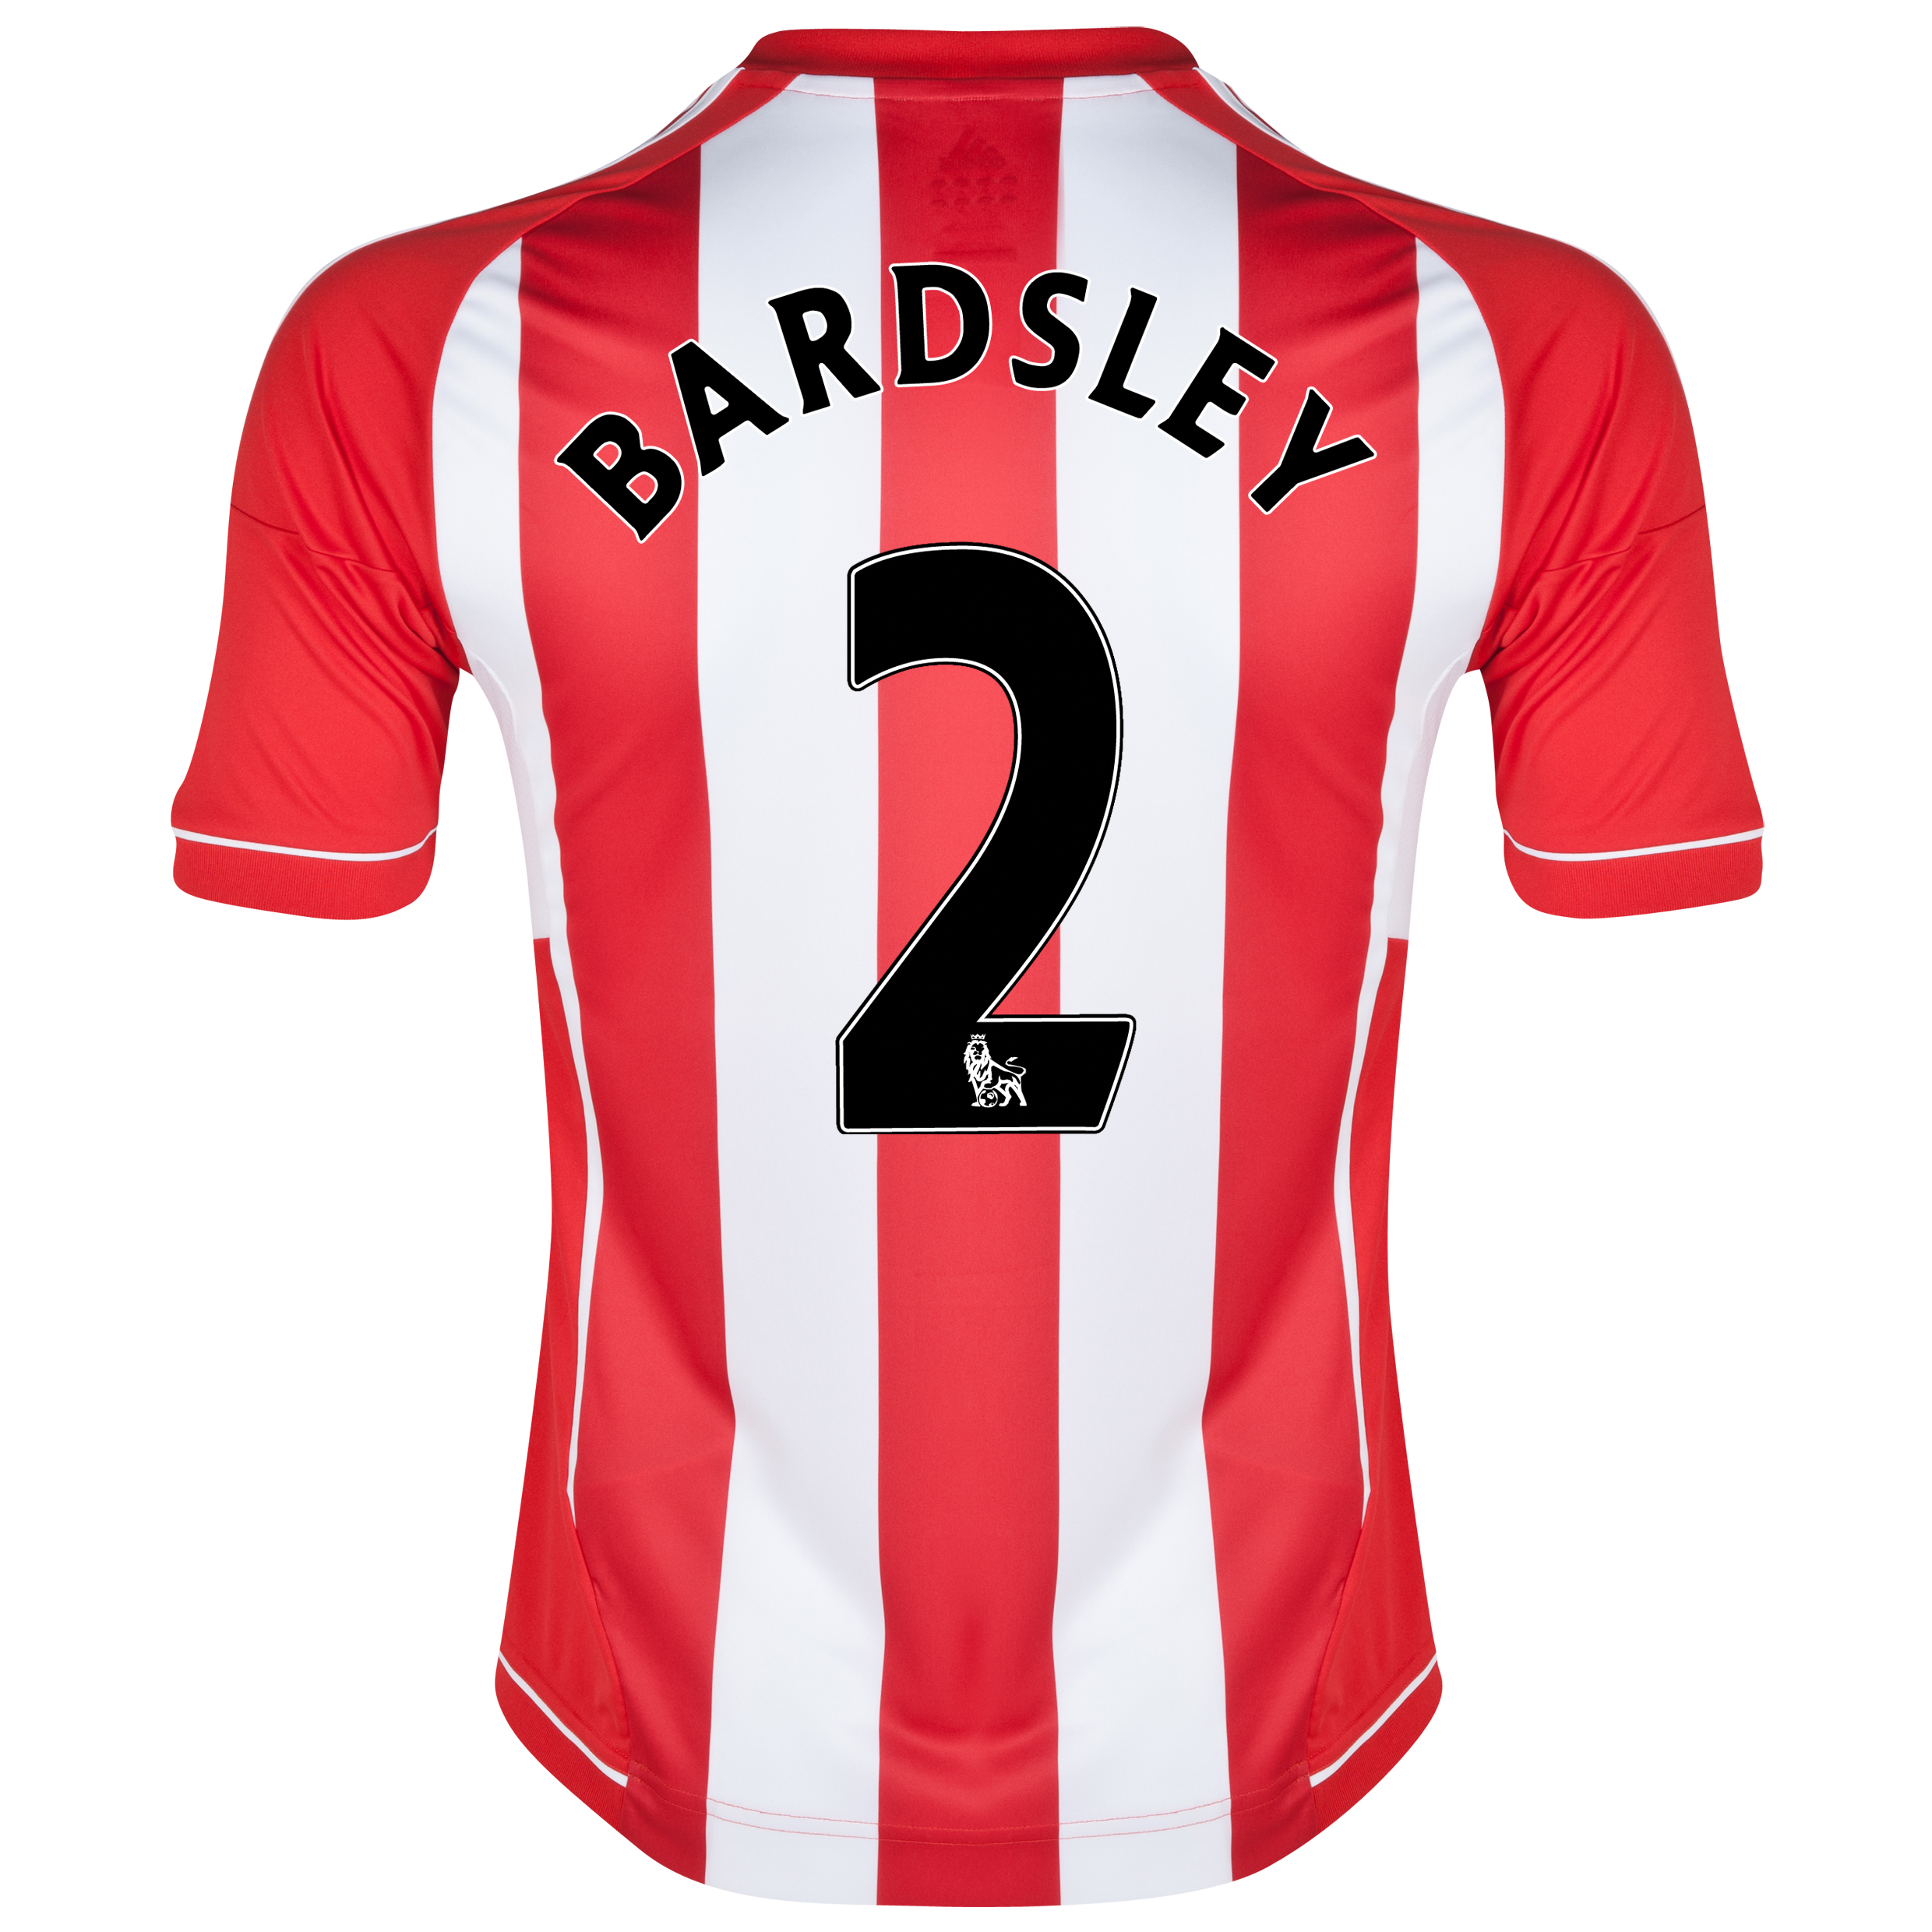 Sunderland Home Shirt 2012/13 with Bardsley 2 printing